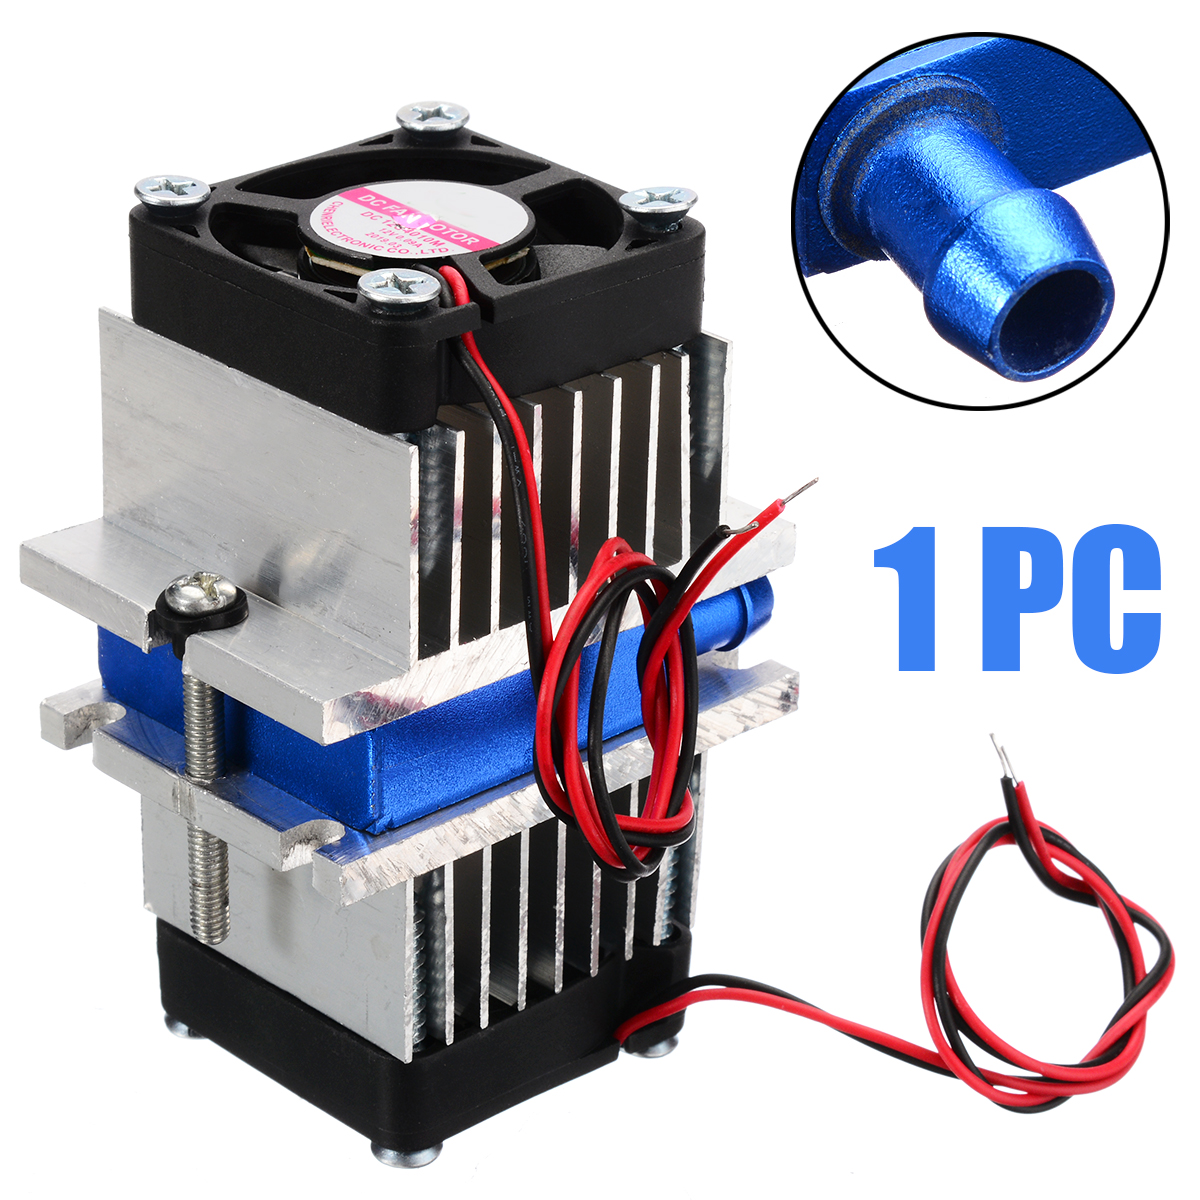 Diy Kit Semiconductor Thermoelectric Cooler Refrigeration Cooling